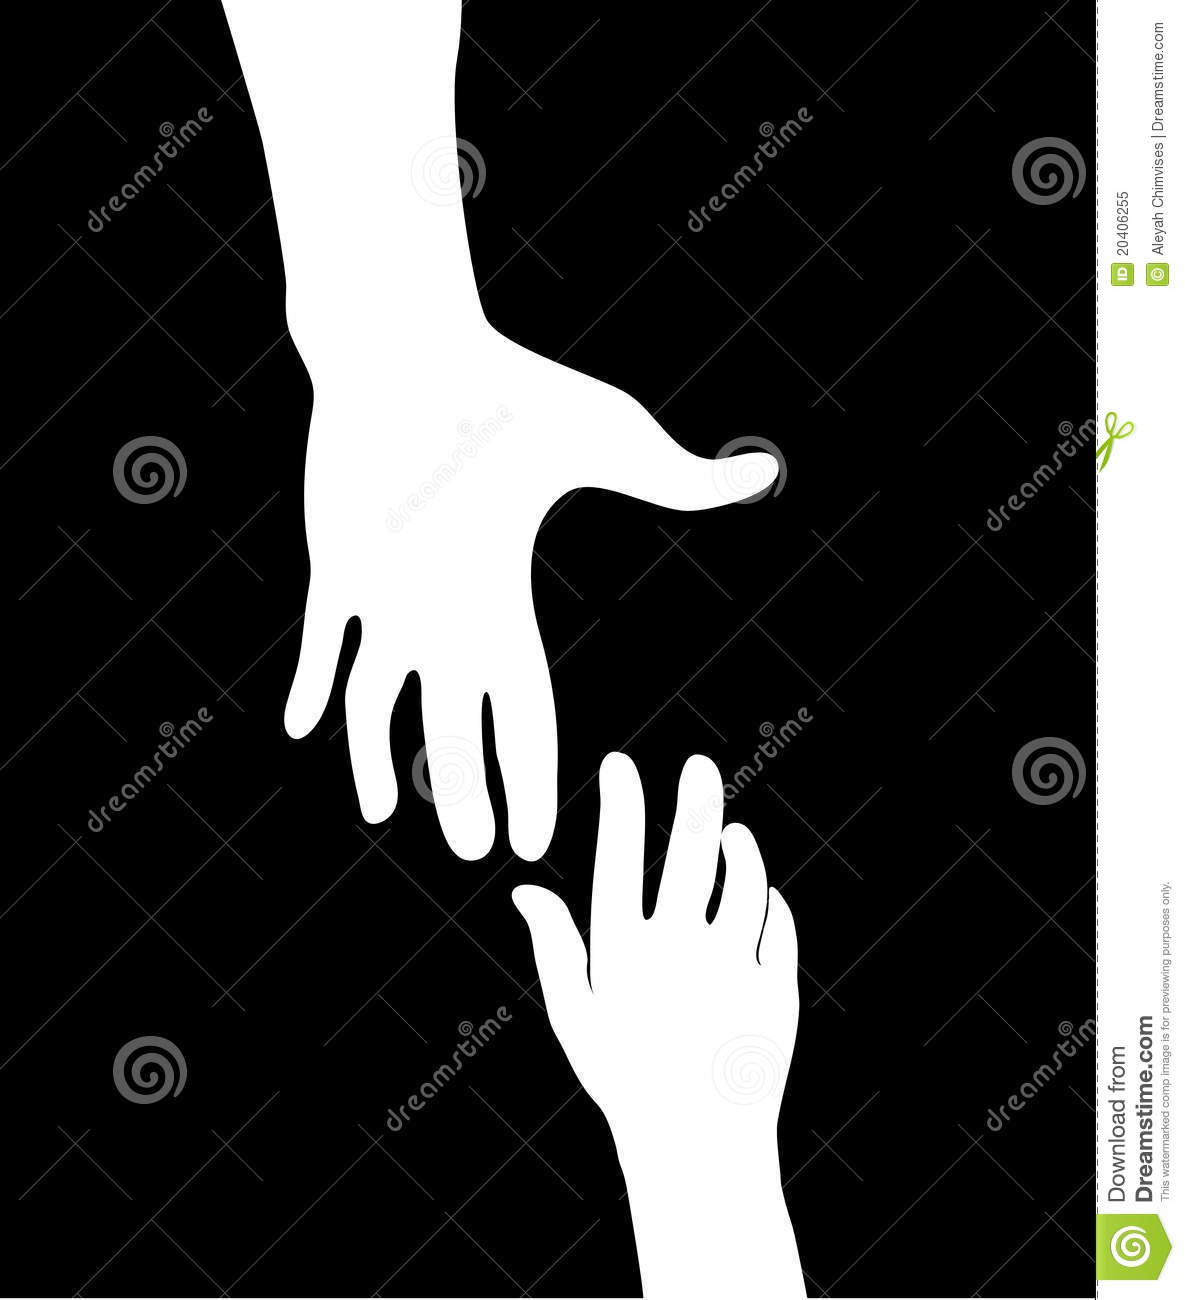 Helping Hand Royalty Free Stock Photo.